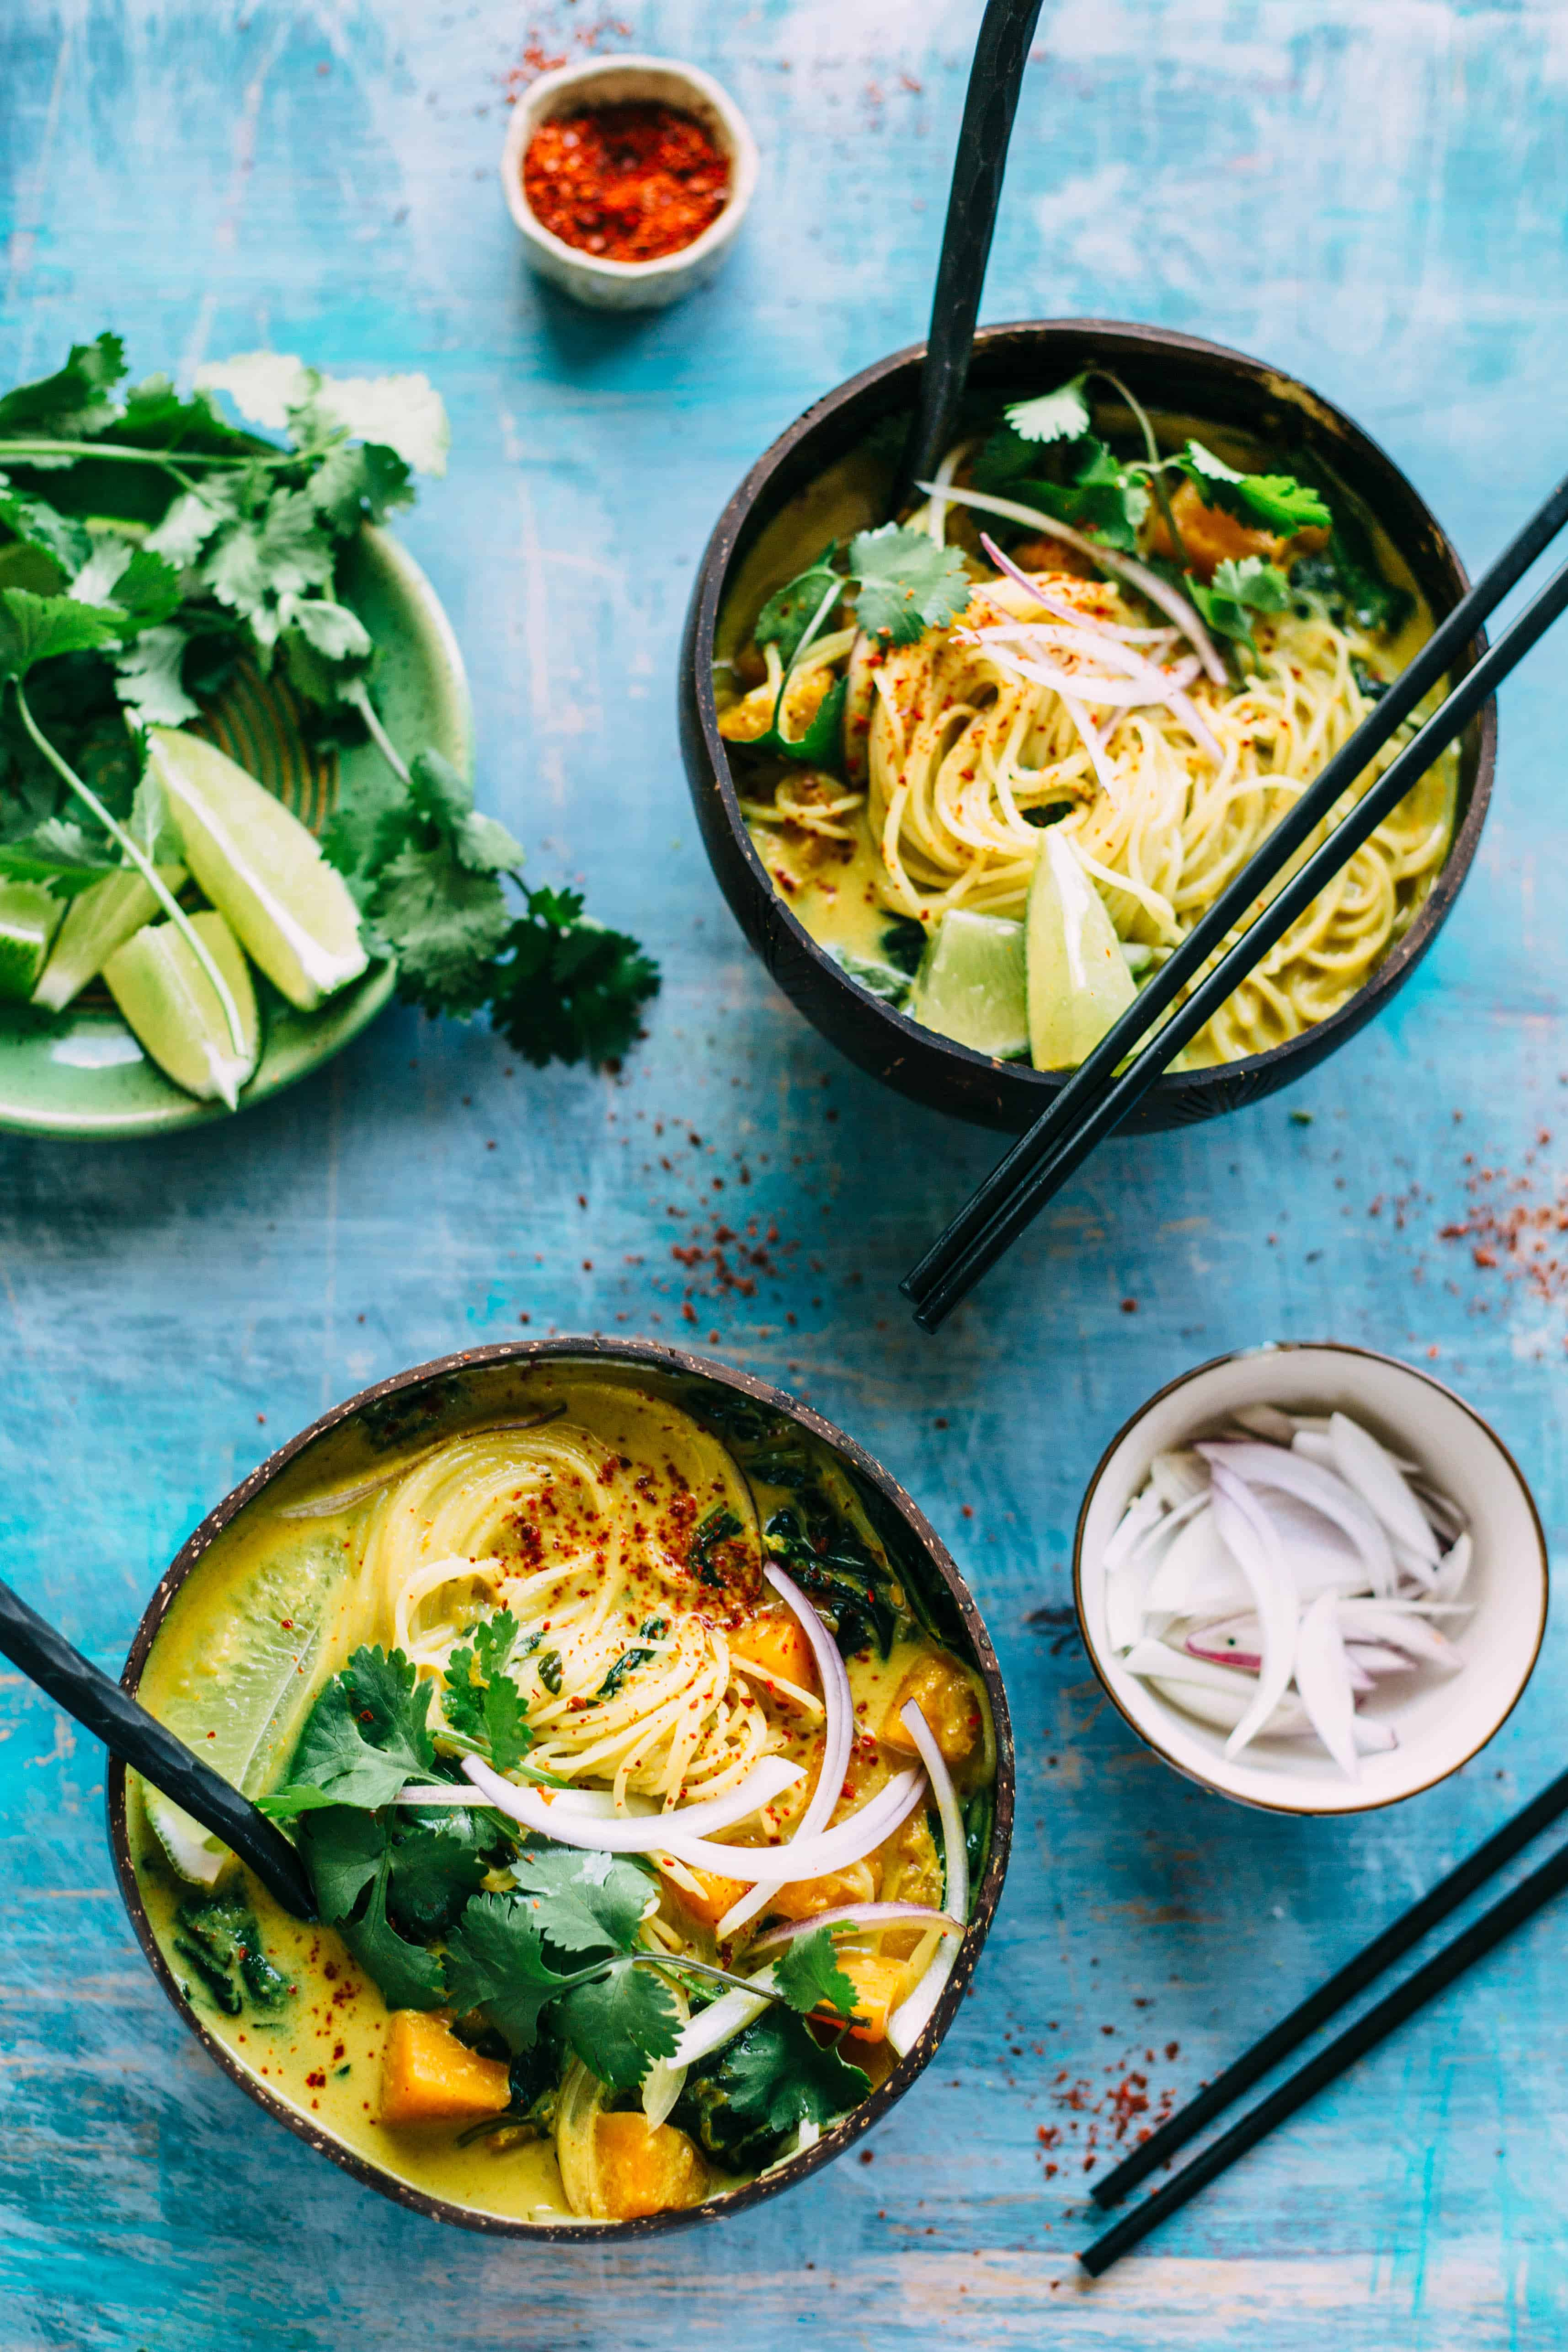 This Butternut Squash + Spinach Coconut Curry Noodle Soup is an easy, warm and flavorful soup recipe that's naturally vegan and gluten free! #vegan #gf #glutenfree #rice #noodles #easy #soup #recipe #coconut #curry #spinach | ColeyCooks.com